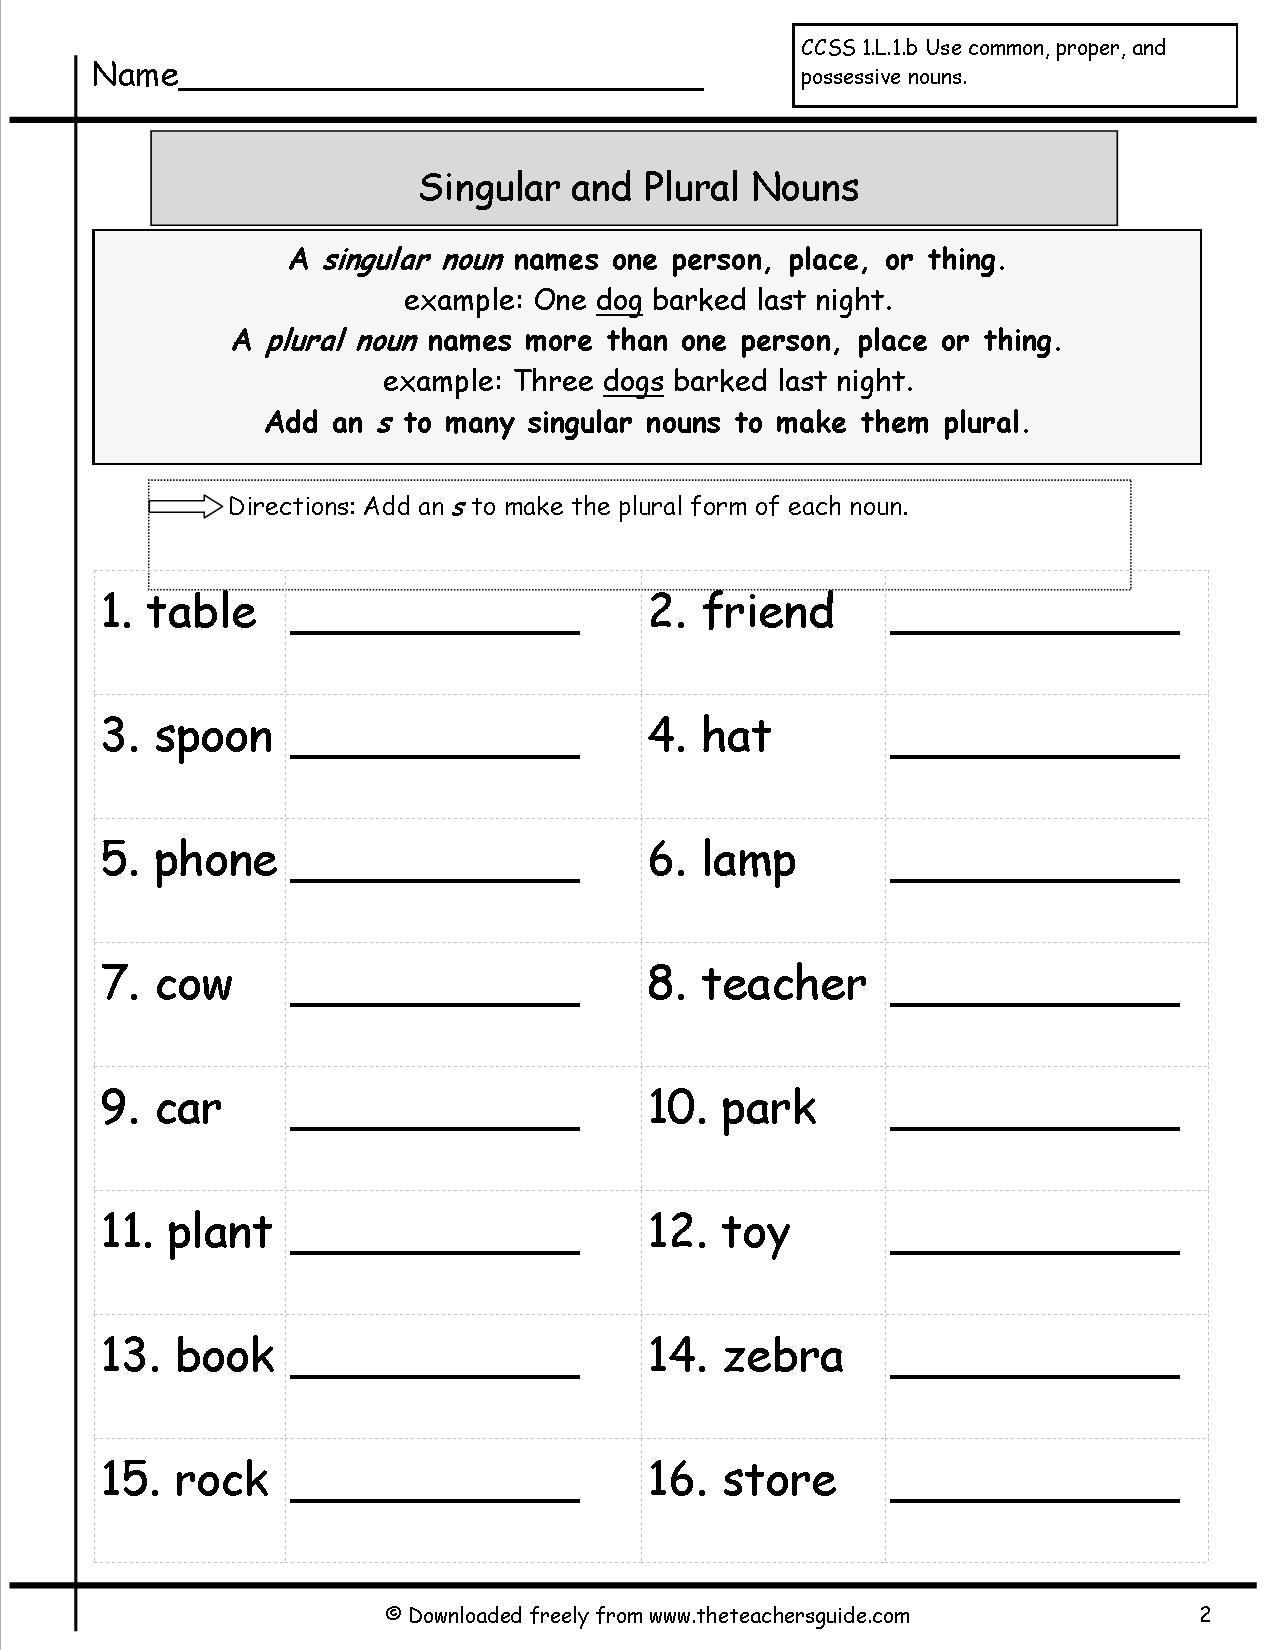 Plurals Worksheet 3rd Grade Singular and Plural Nouns with Plurals Worksheets 2nd